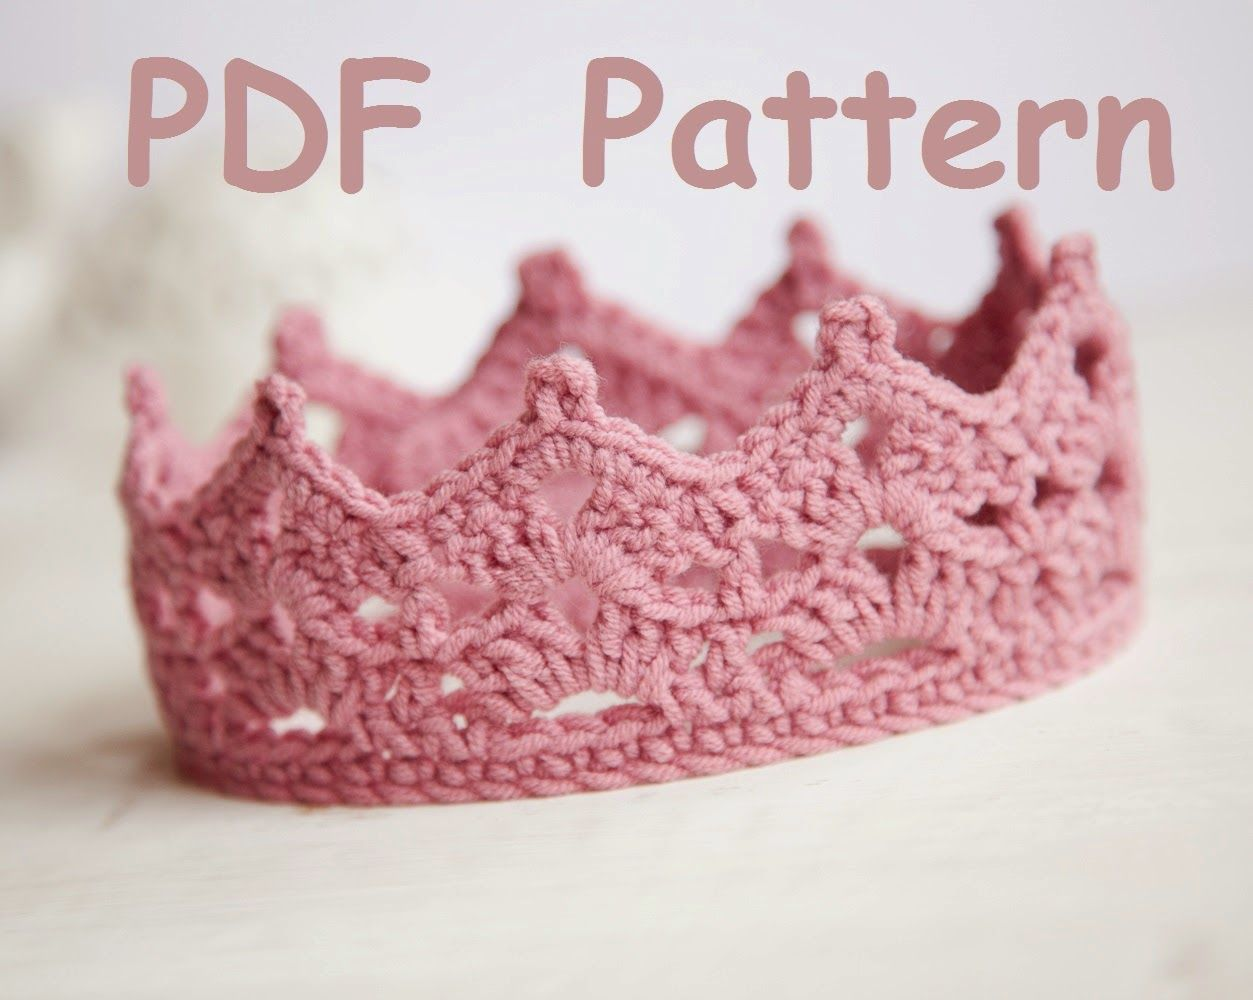 Crochet Baby Girl Clothes Patterns : free crochet patterns for baby crowns - H?ada? Googlom ...